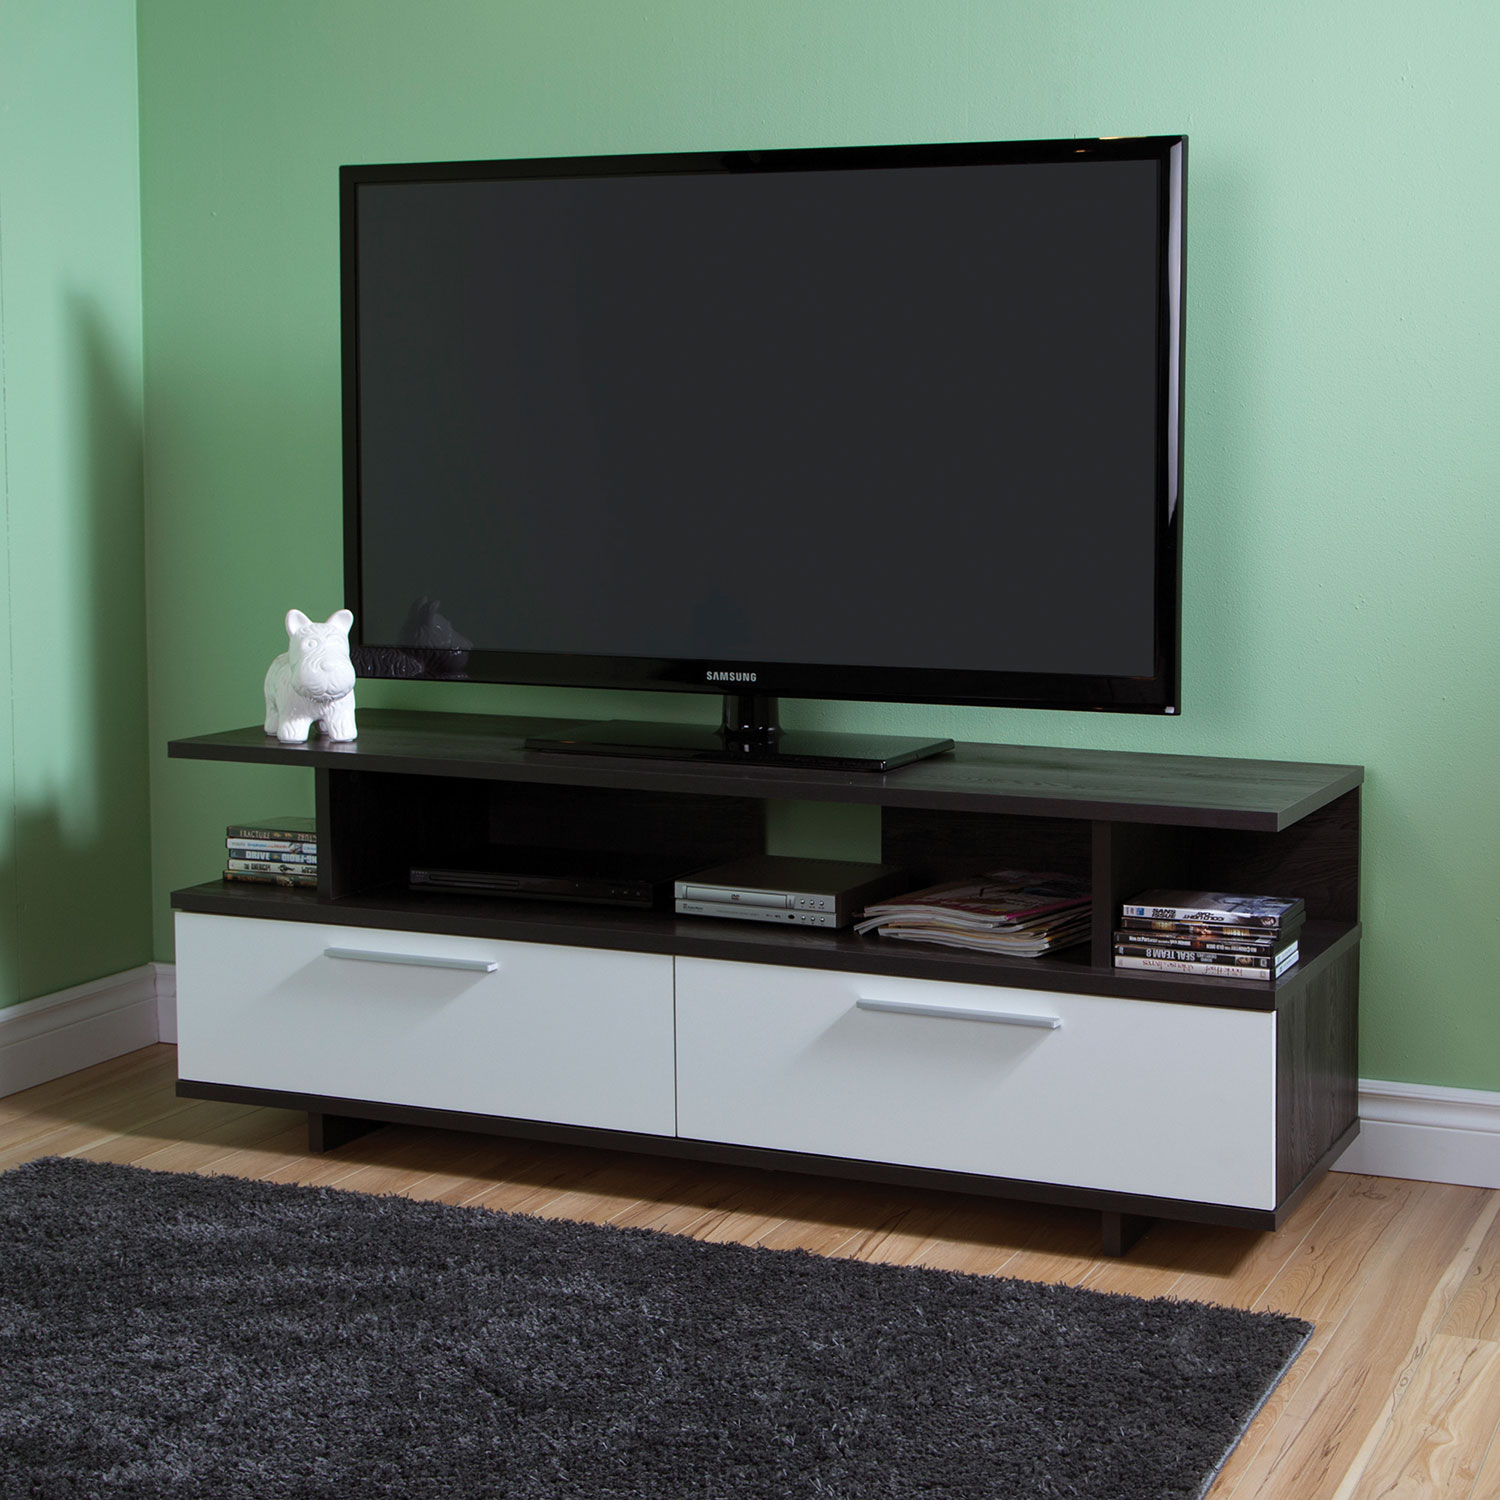 south shore reflekt tv stand for tvs up to   grey oak  tv  - south shore reflekt tv stand for tvs up to   grey oak  tv stands best buy canada